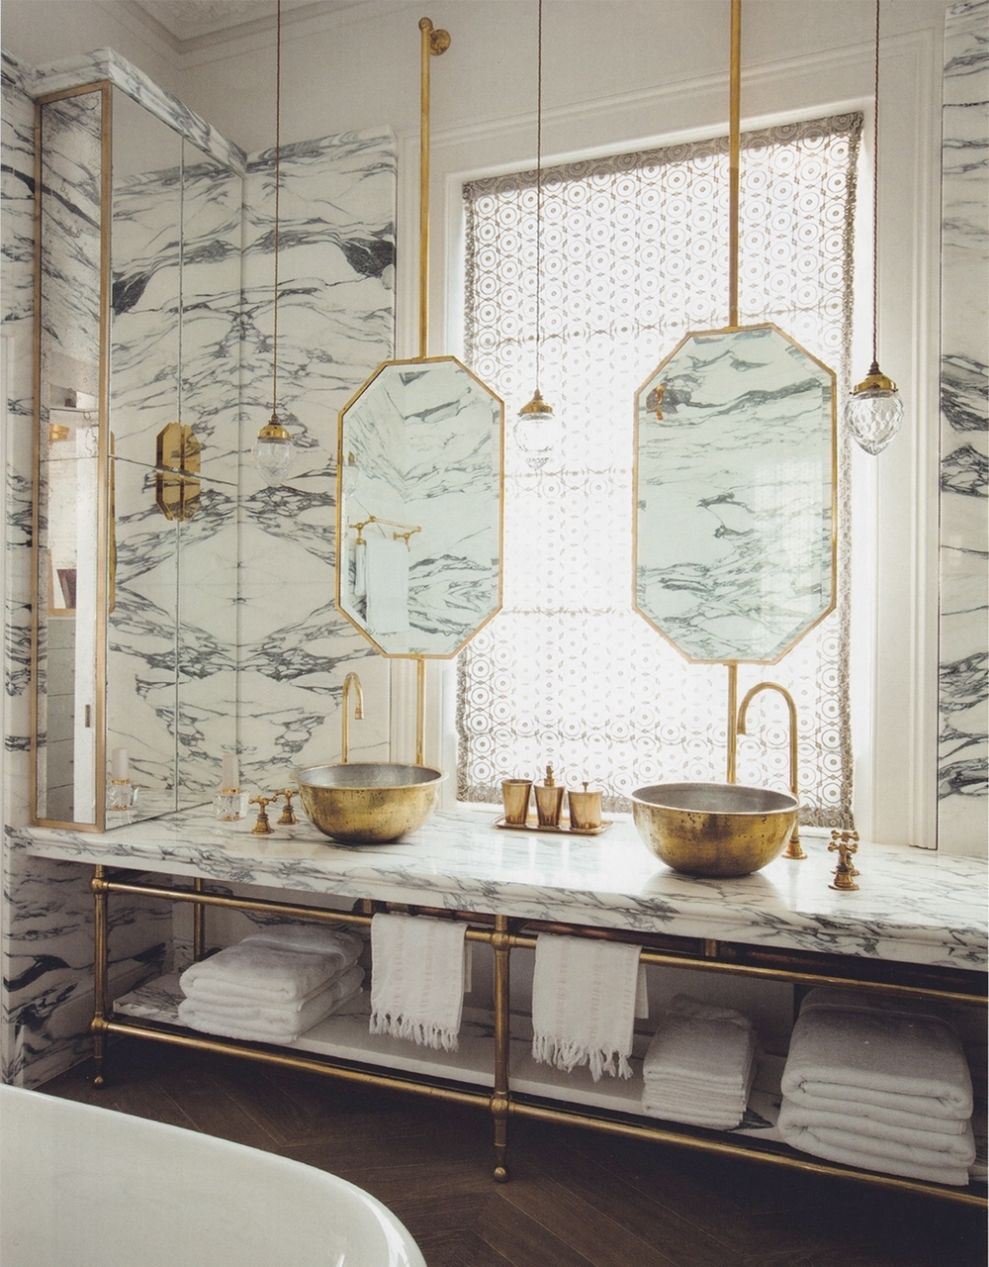 A London Bathroom Fit for a Queen | Vessel sink, Bathroom designs ...